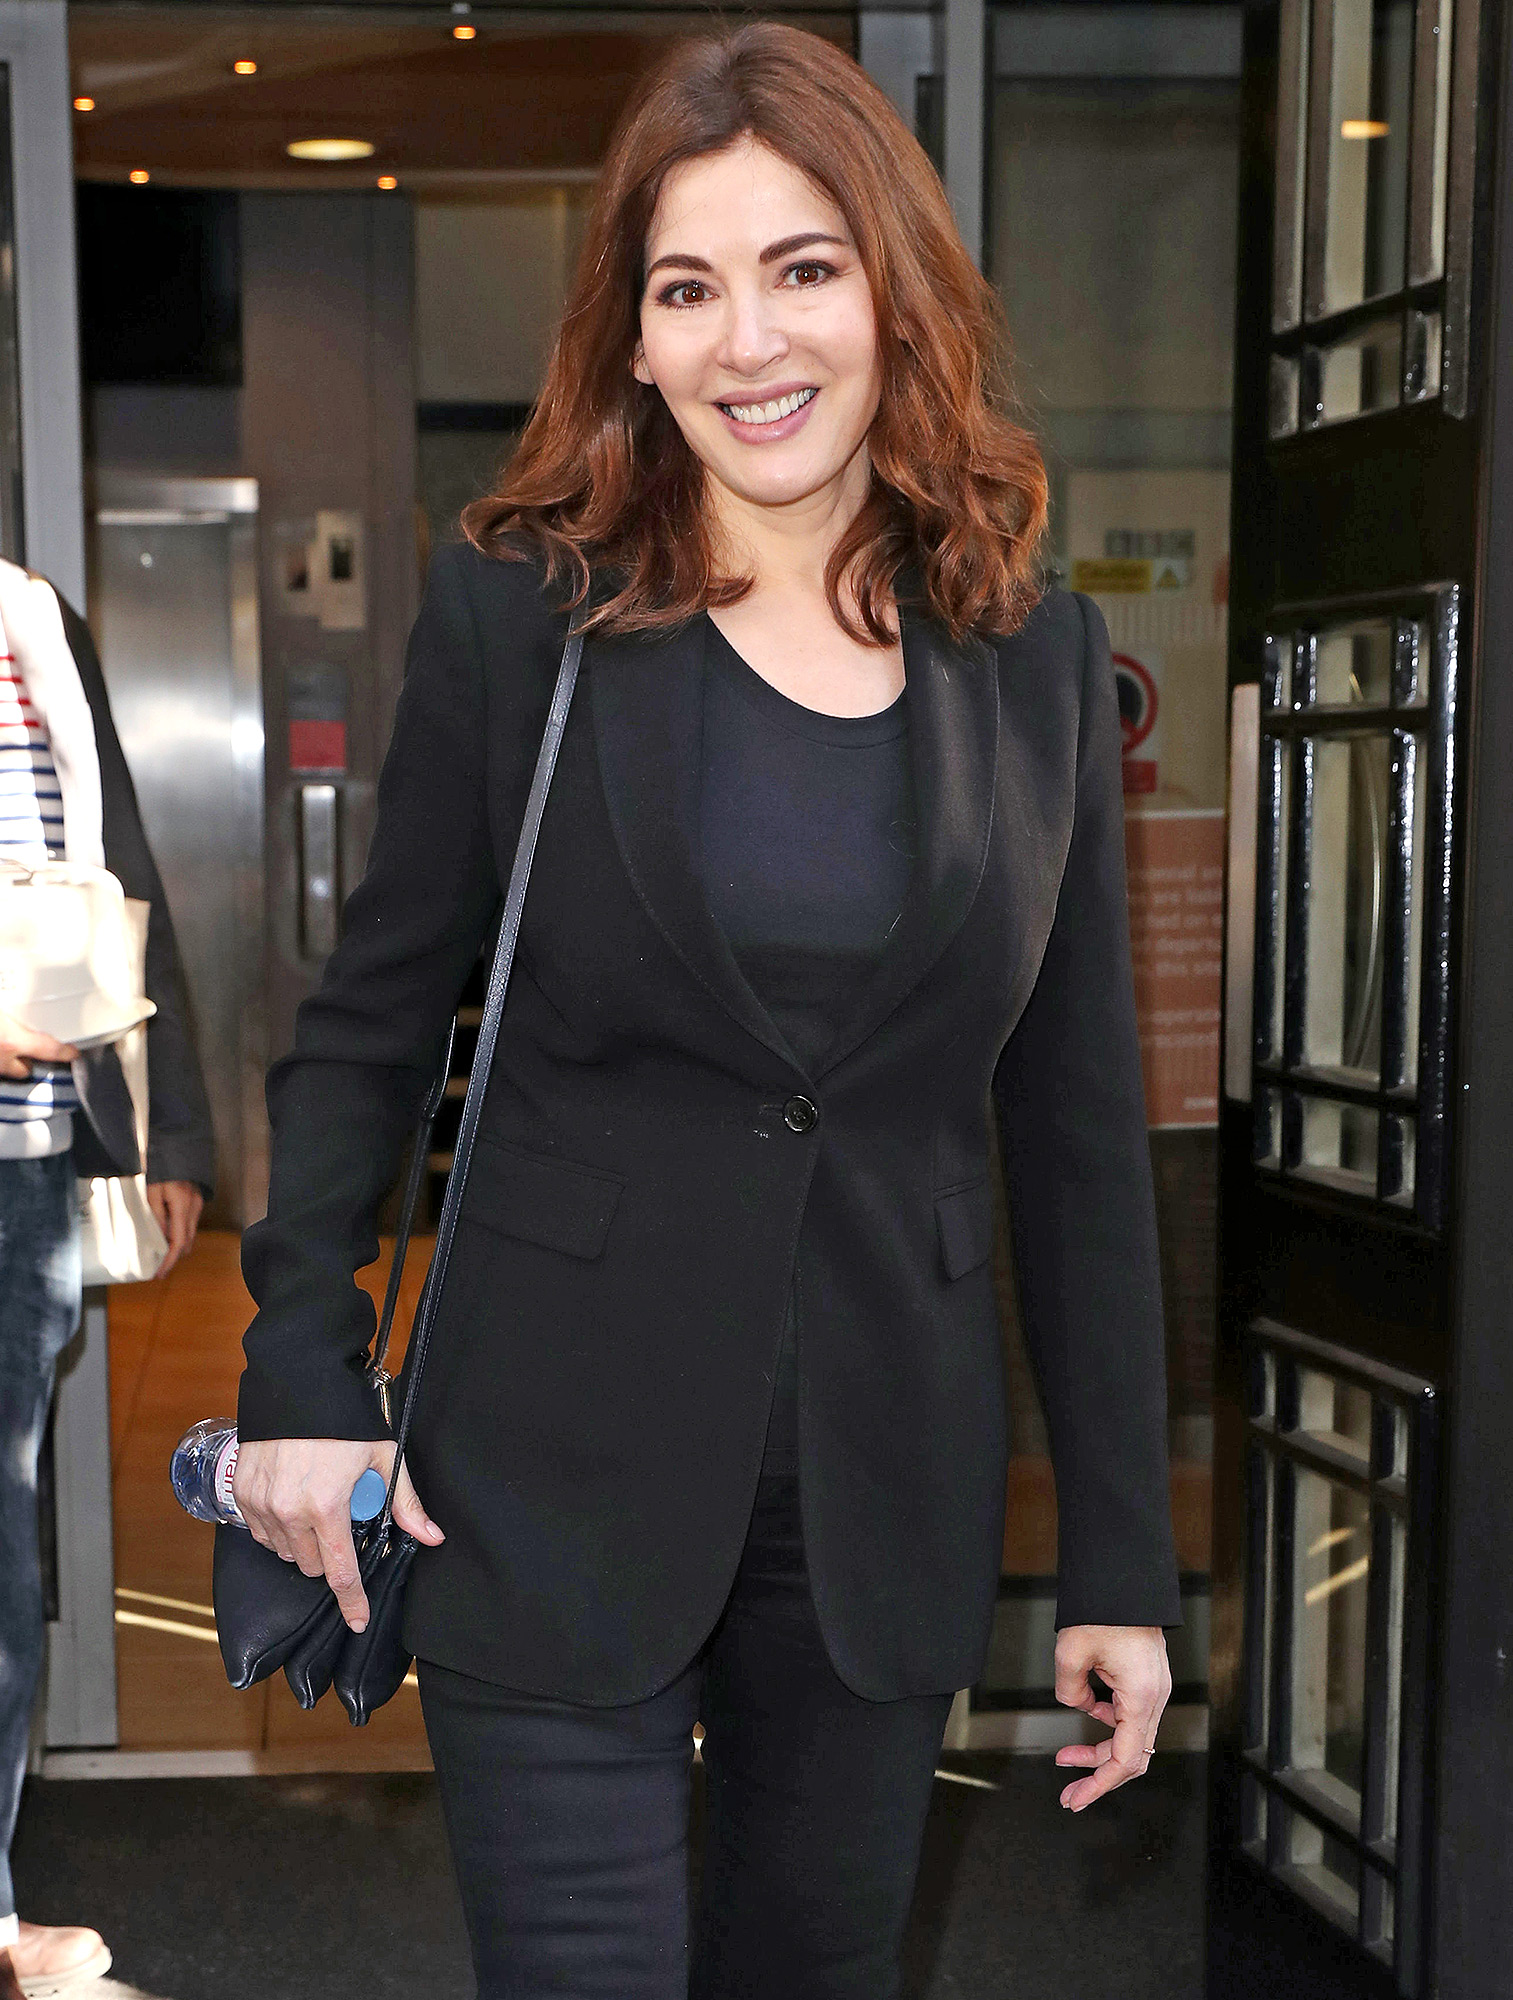 Celebrities out and about, London, UK - 22 Sep 2017